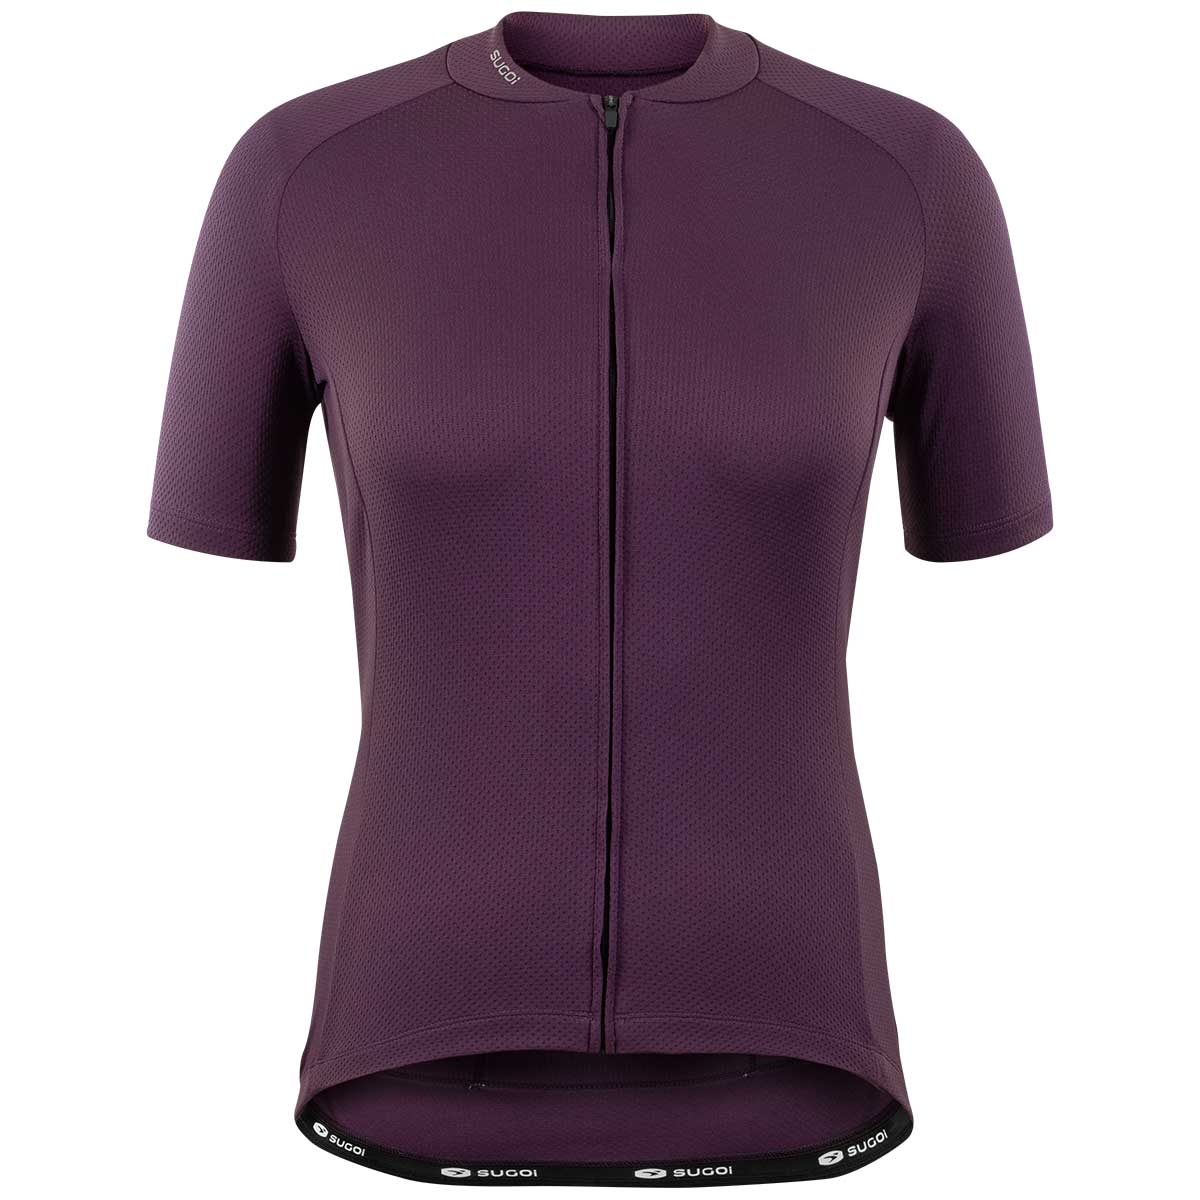 Sugoi women's Essence Jersey in Regal